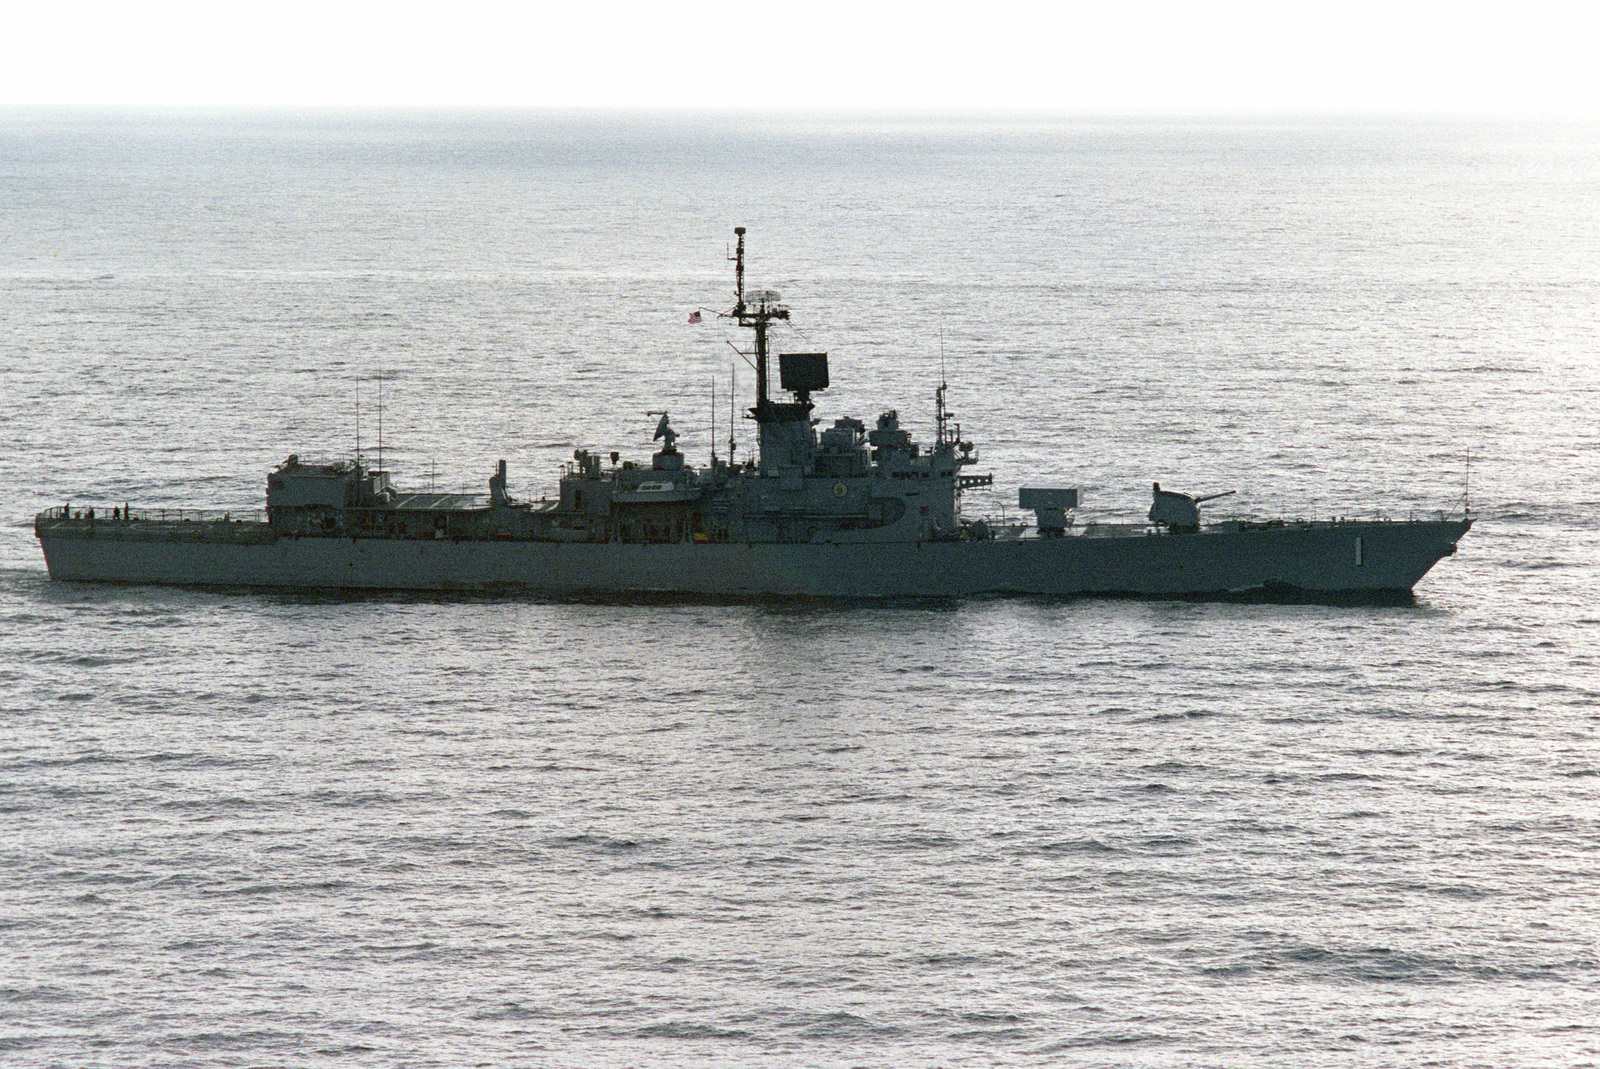 Starboard view of the US Navy's first guided missile frigate, the Brooke Class, USS BROOKE (FFG 1) off the coast of San Clemente Island, California, during a missile exercise